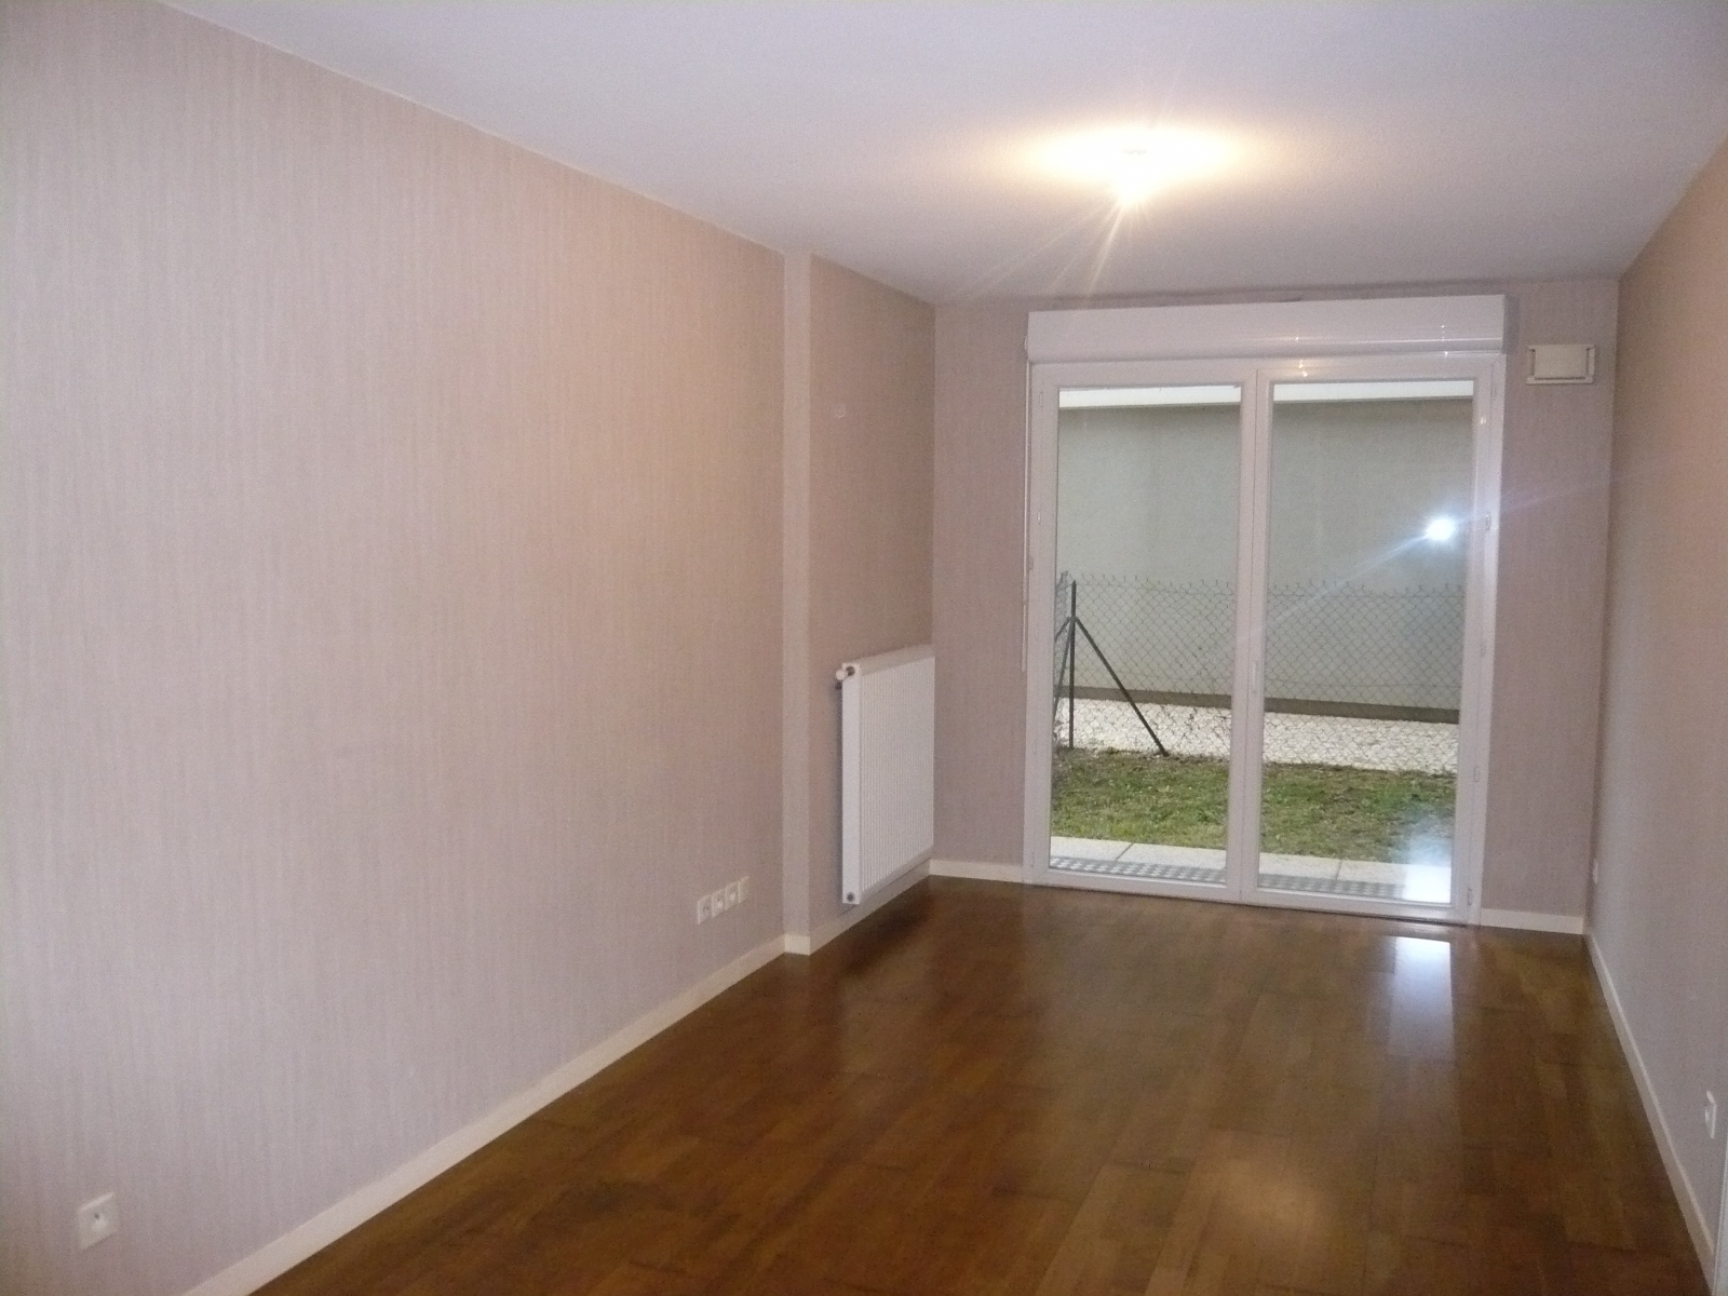 Photos de Appartement à Bron (69500)